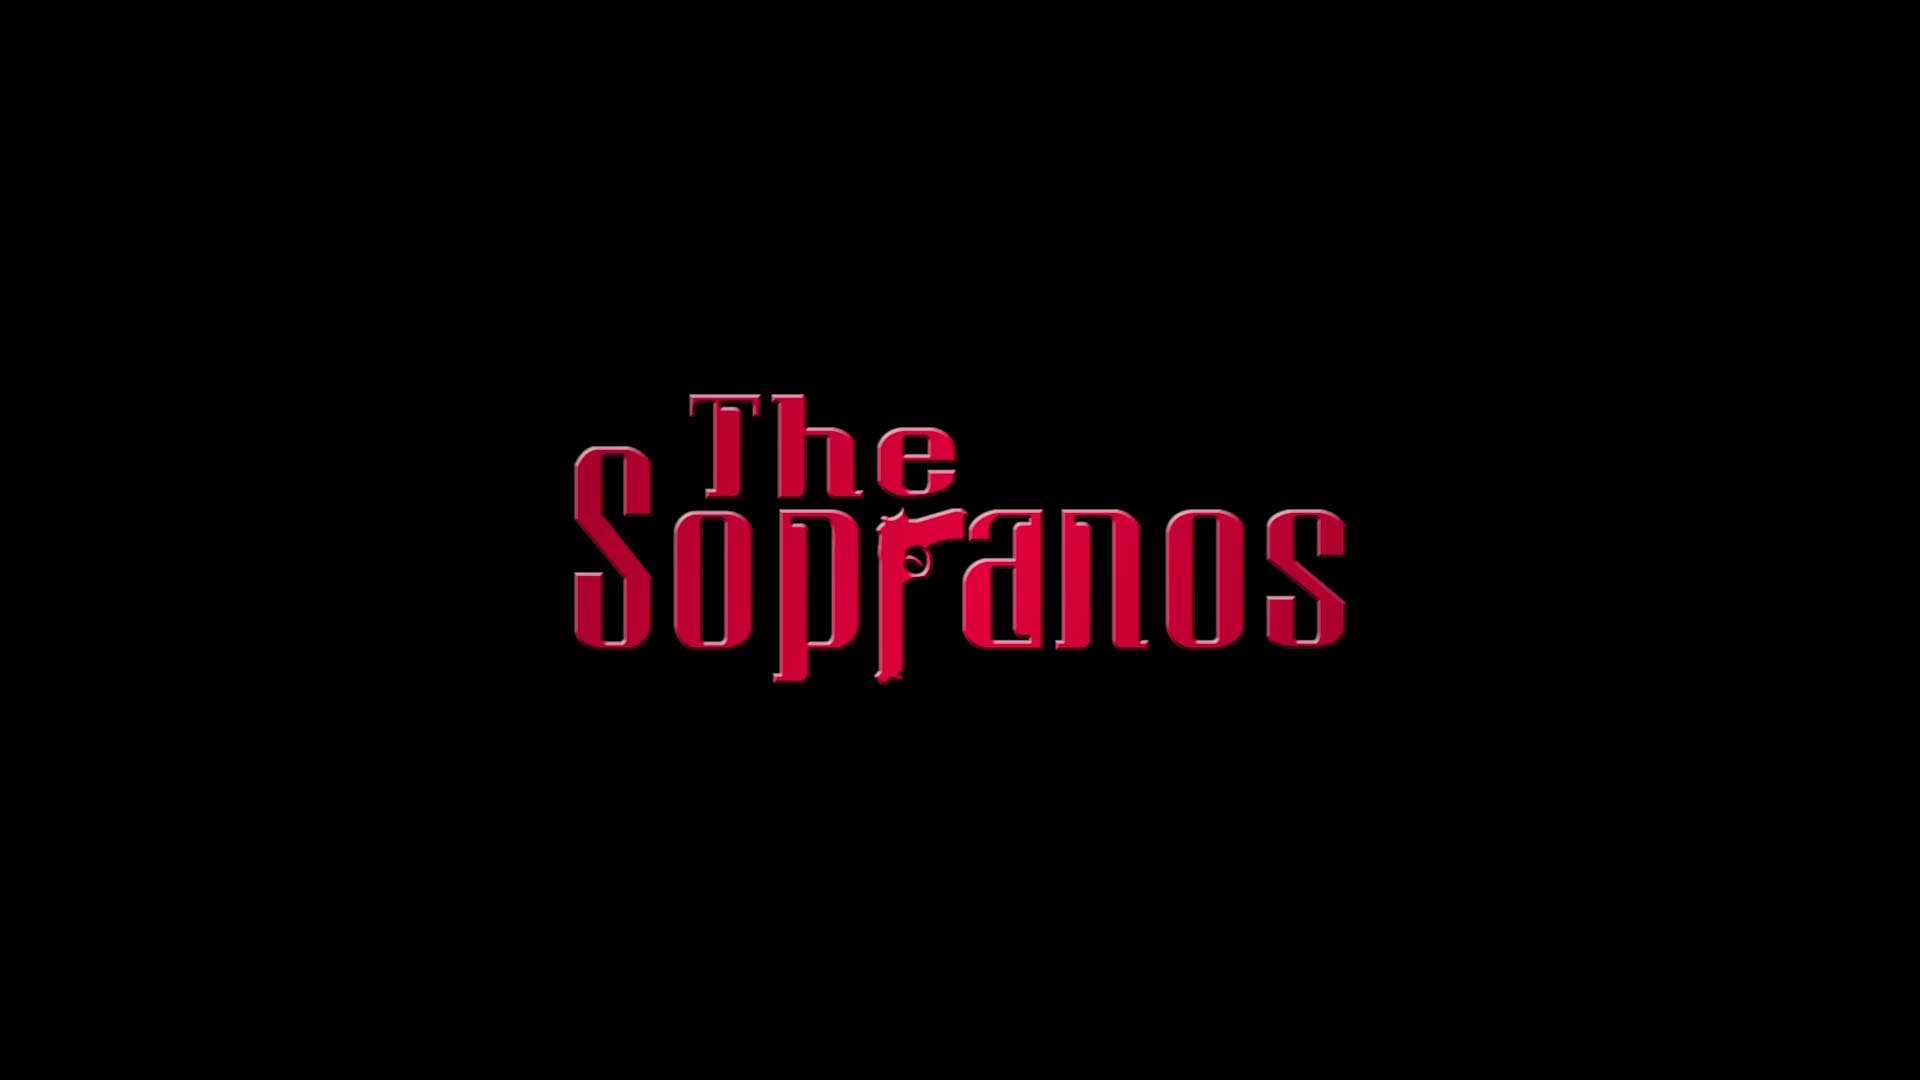 The Sopranos Logo Png